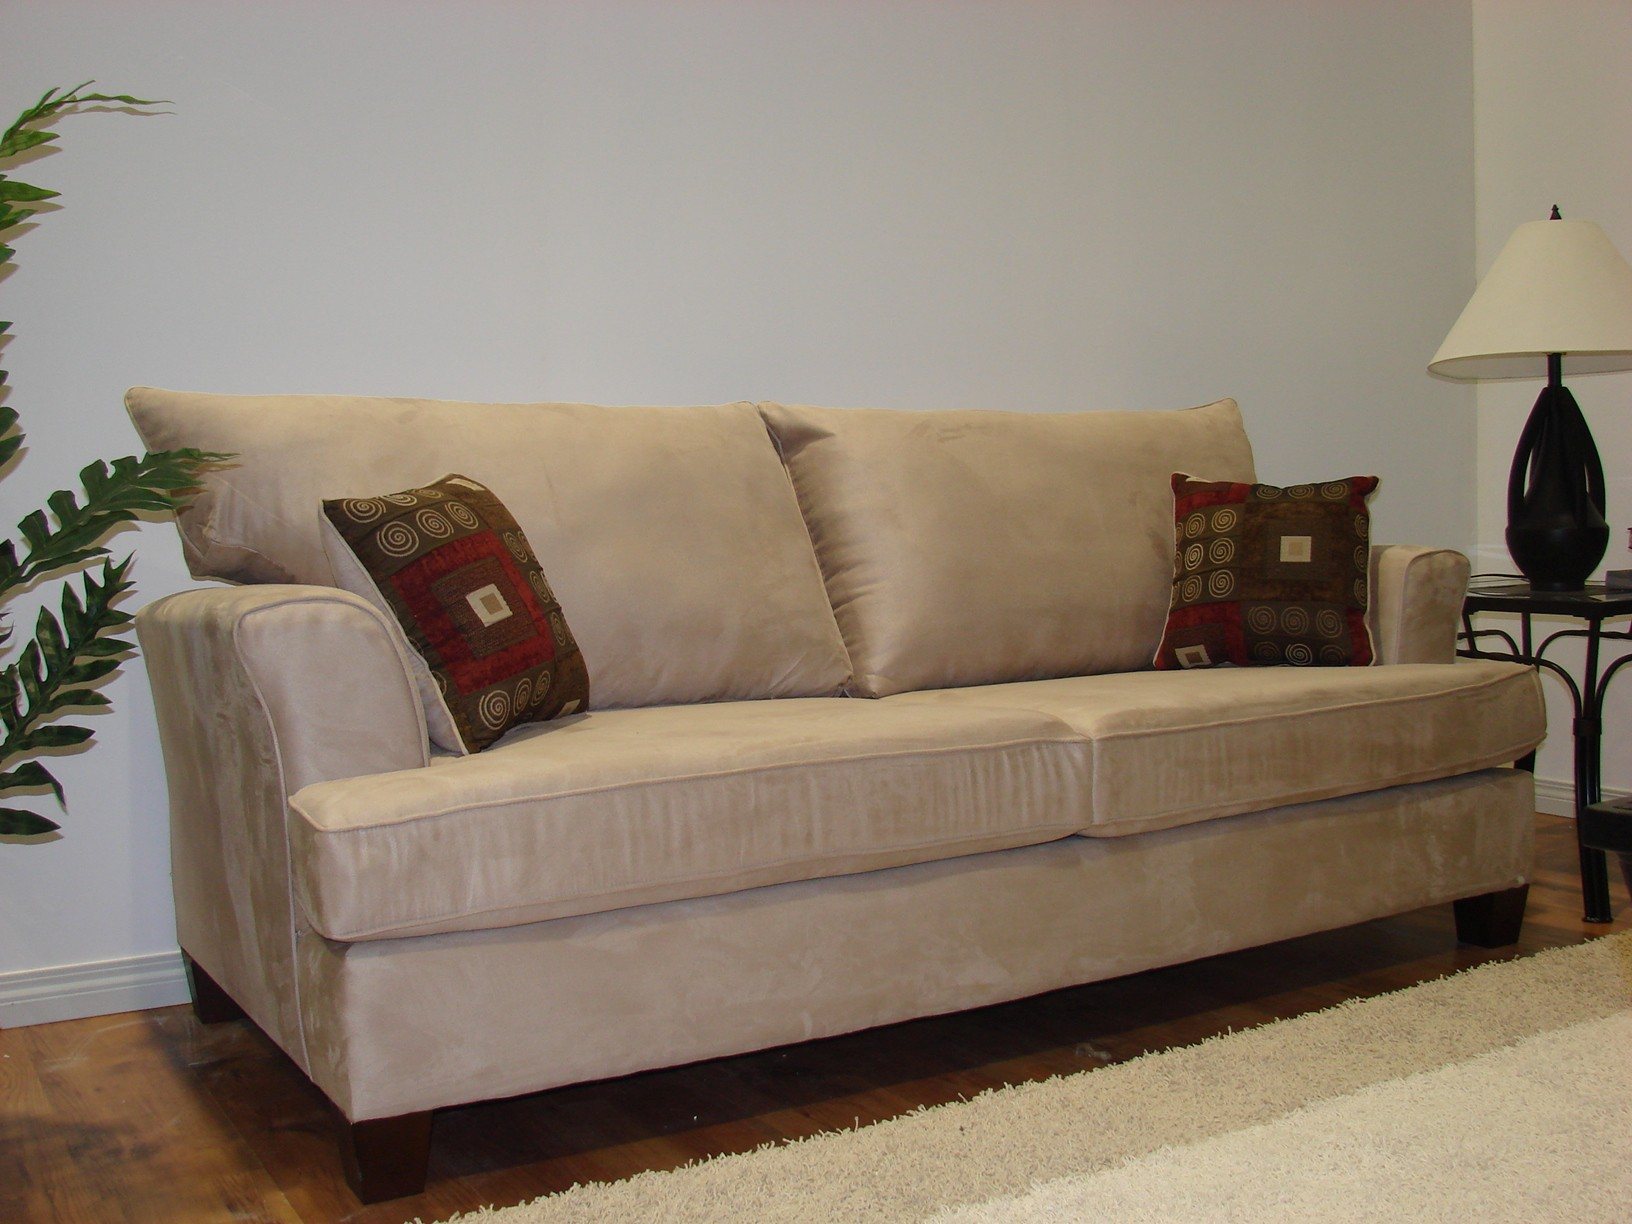 Cream Colored sofa Fascinating Fancy Cream Colored Couch In Living Room sofa Ideas with Cream Picture